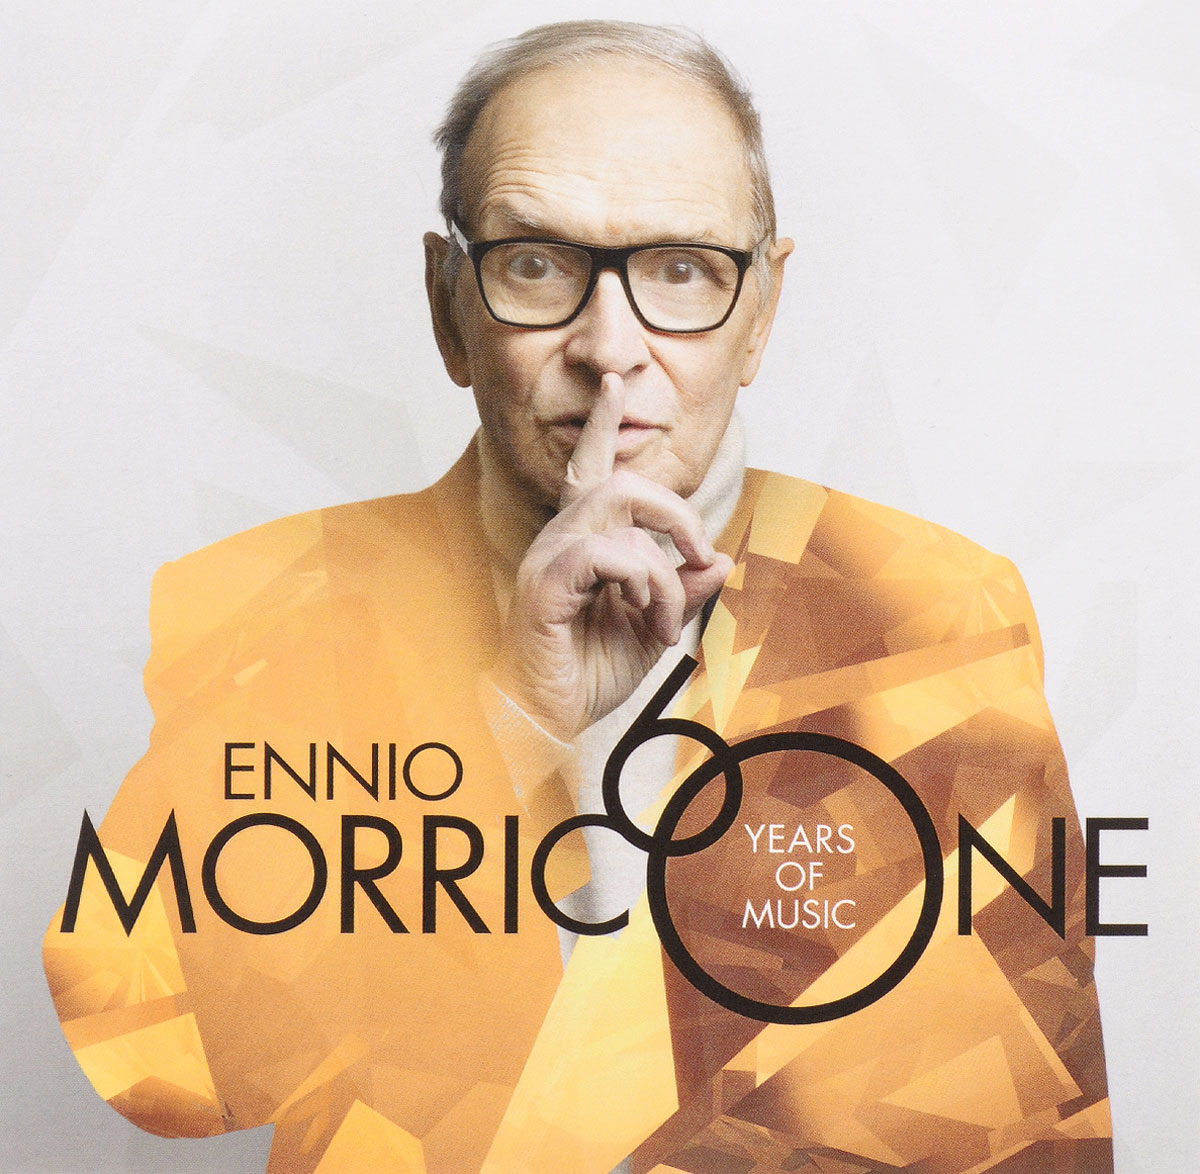 Эннио Морриконе Ennio Morricone. Morricone 60 Years Of Music (CD + DVD) ennio morricone morricone 60 cd